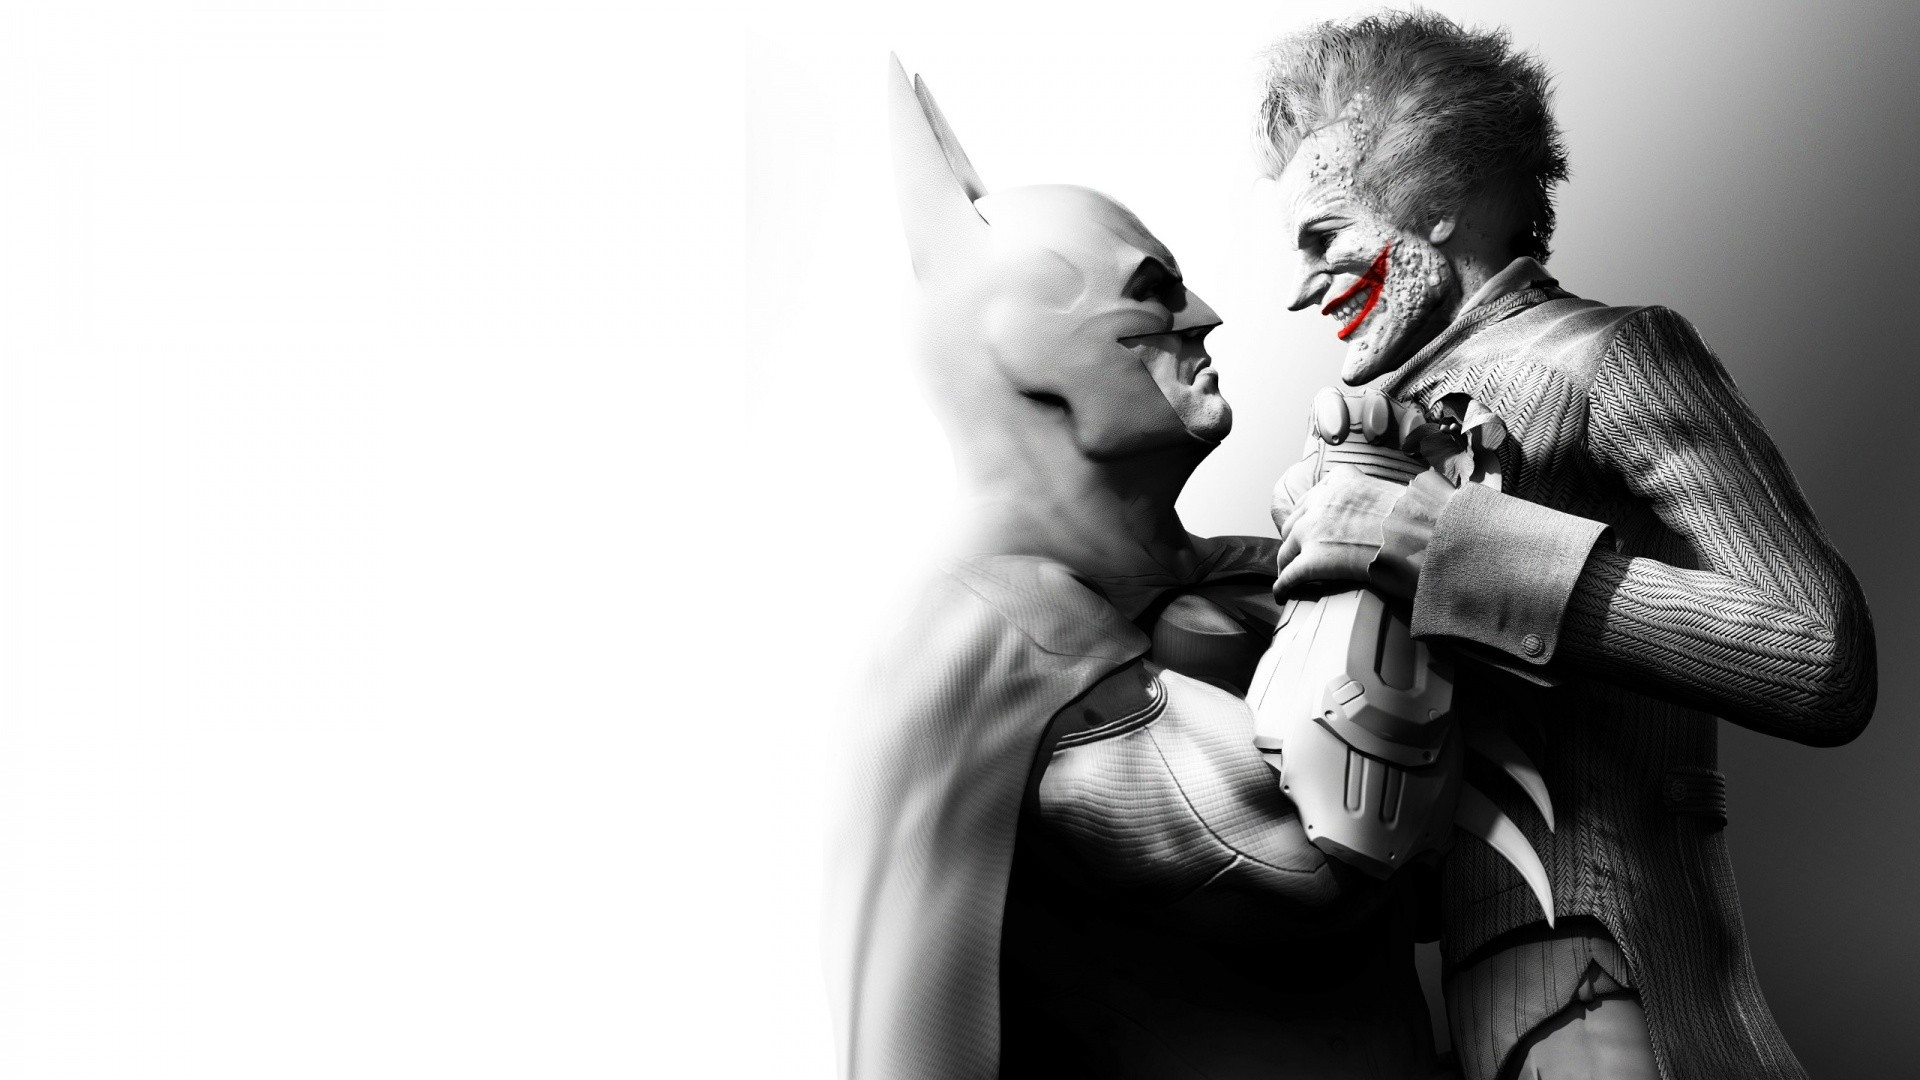 Explore the Collection Batman Video Games Batman Arkham City 402455 1920x1080